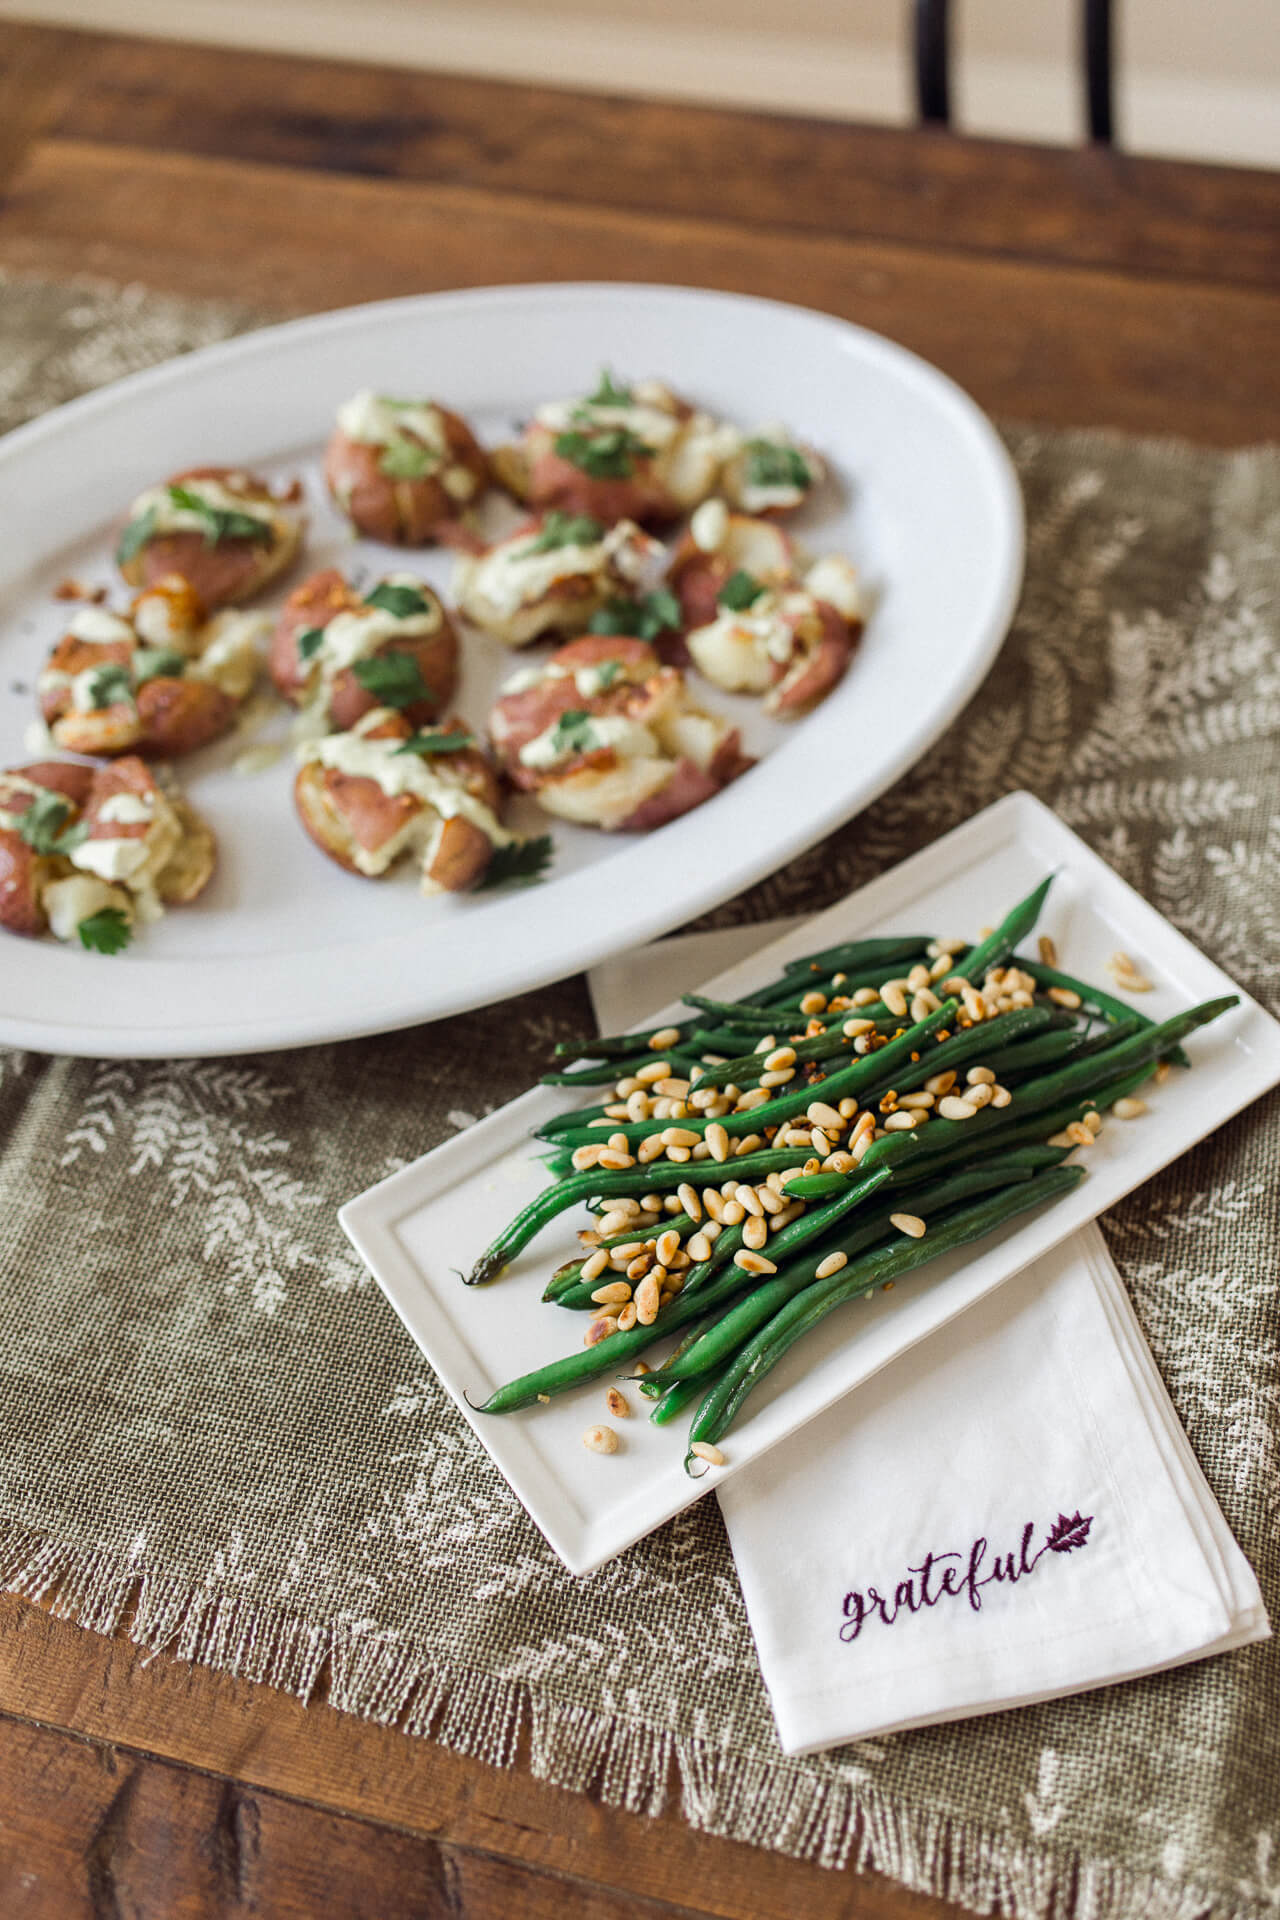 These Thanksgiving sides like green beans and smashed potatoes are so yummy! - M Loves M @marmar